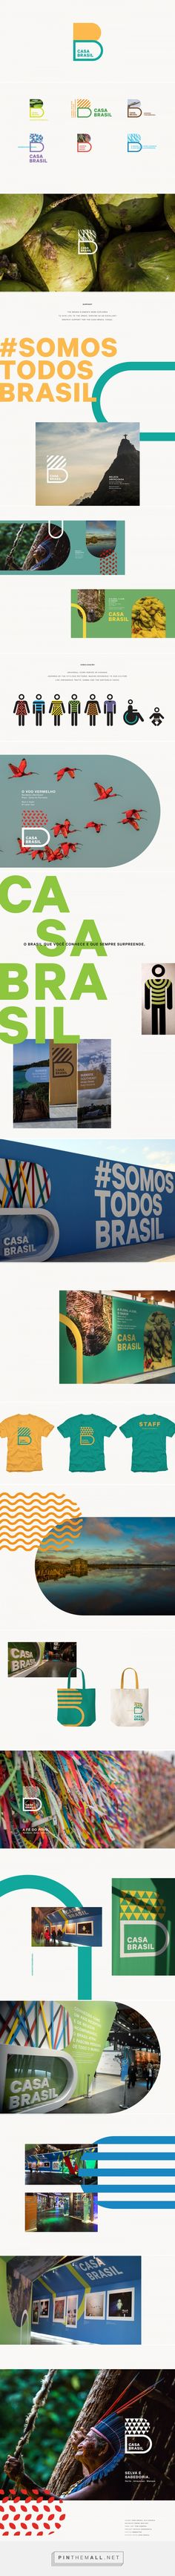 Casa Brasil on Behance - created on 2017-06-22 19:09:31